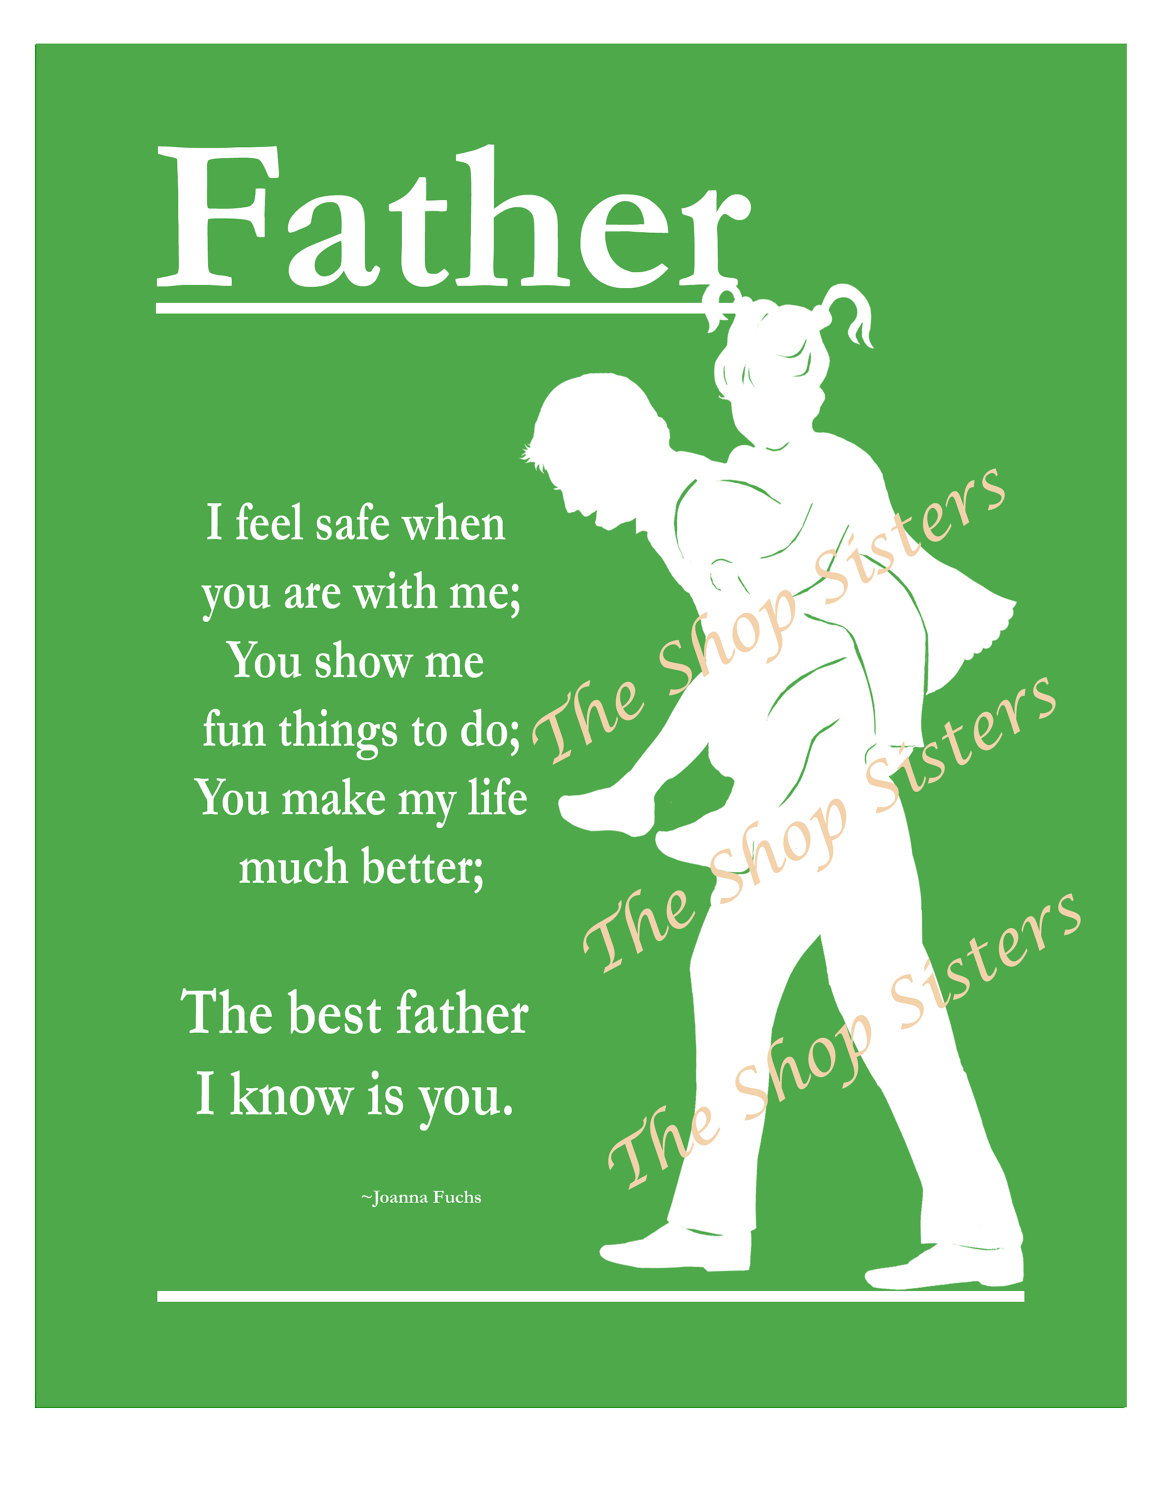 Father daughter poems in marathi whatsapp status the best father is you fathers day from daughter altavistaventures Images